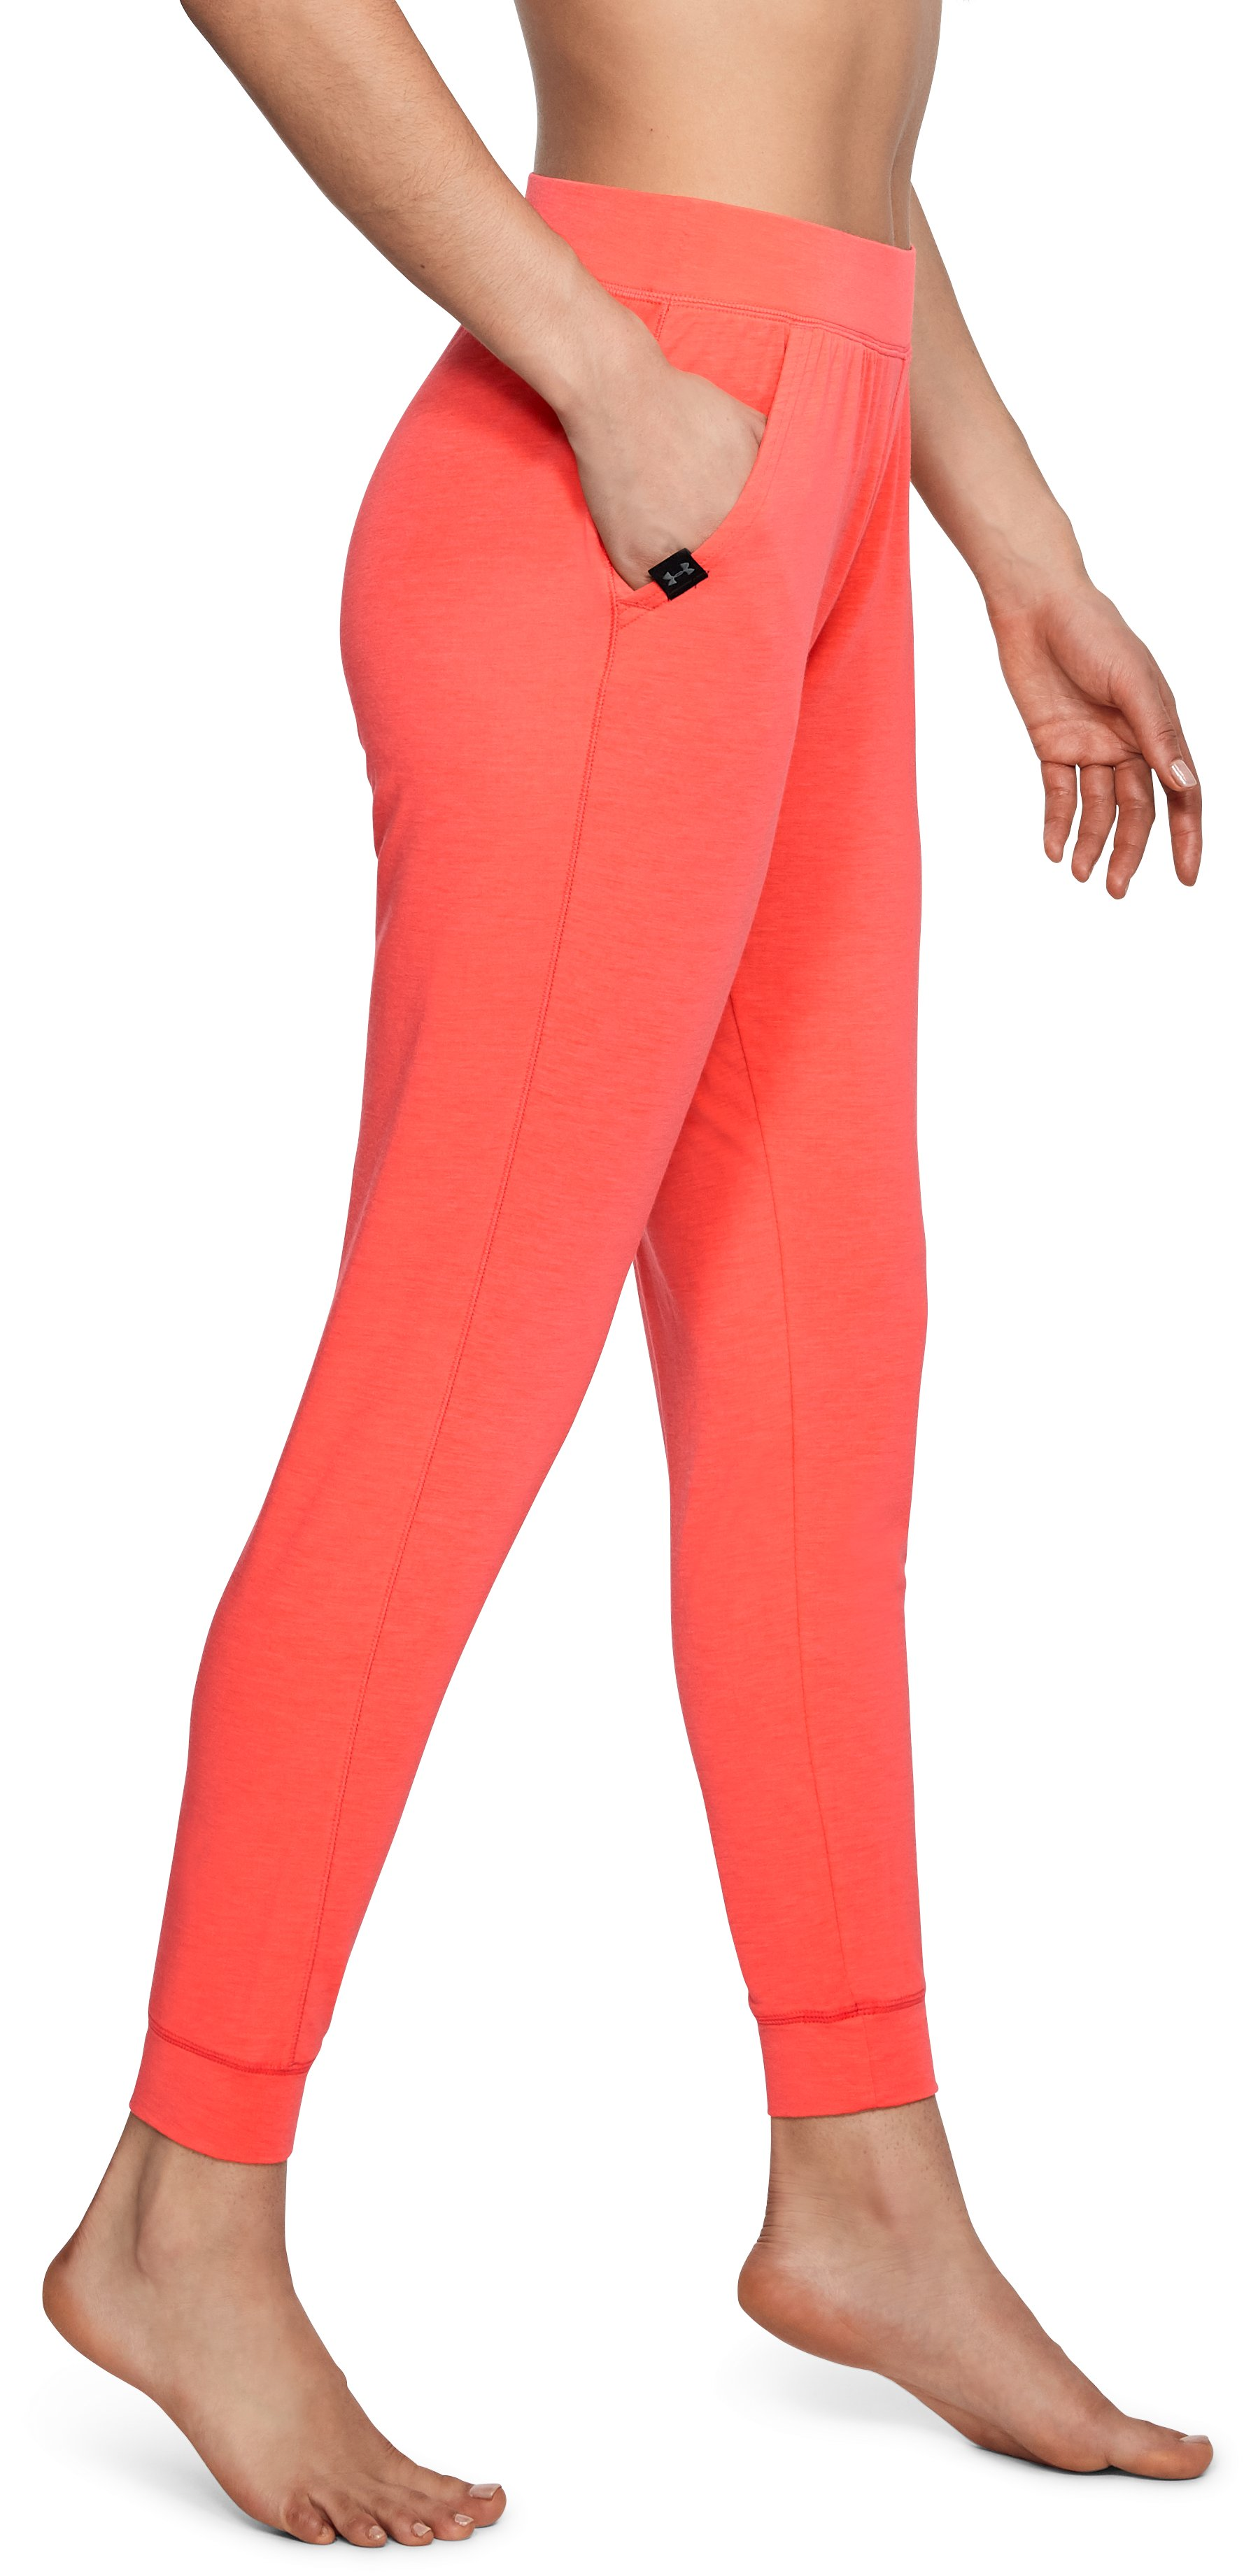 Women's Athlete Recovery Elite Sleepwear Joggers, Vermilion, undefined